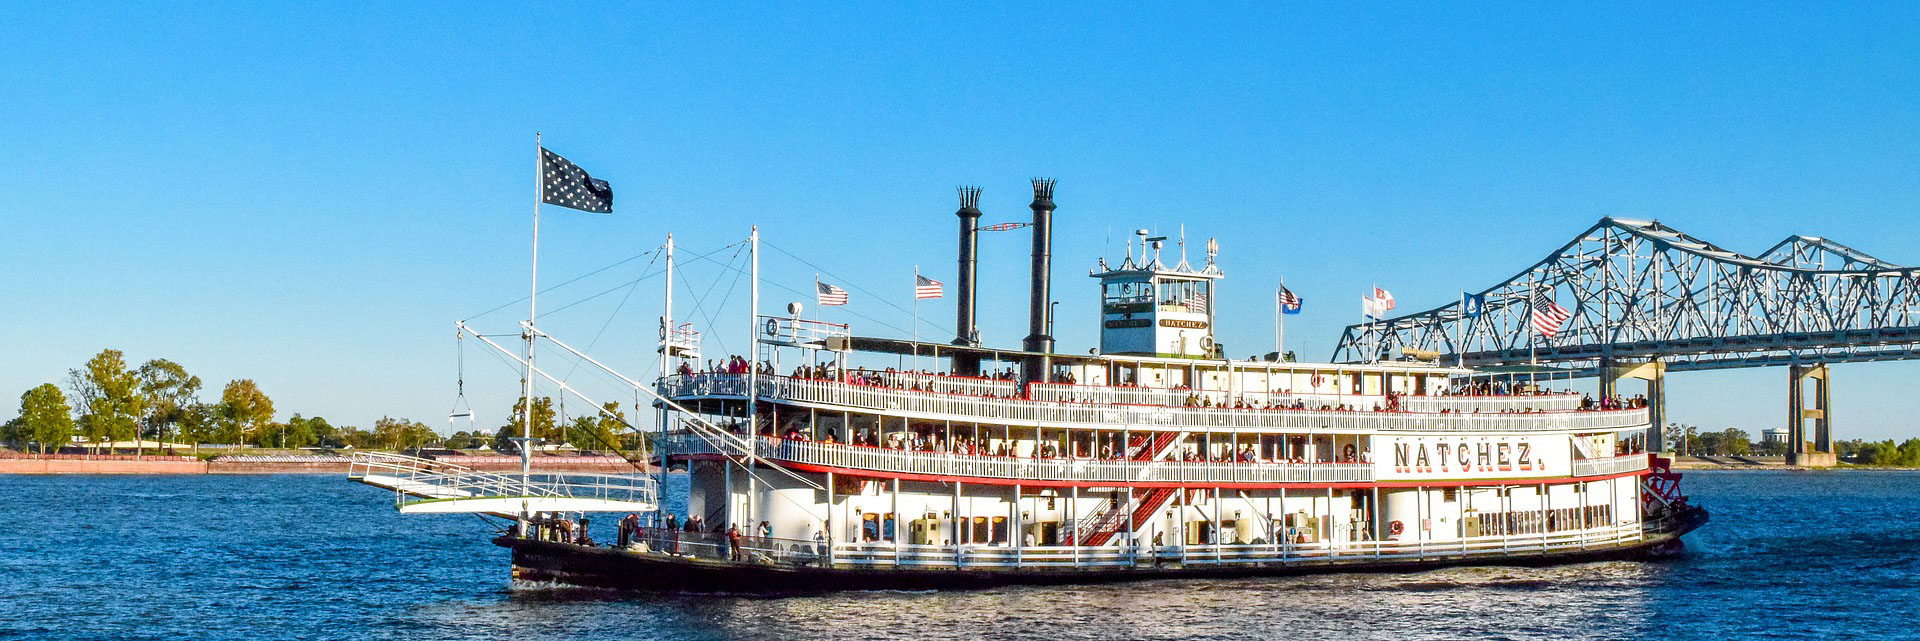 Steamboat Evening Jazz Cruise with Dinner